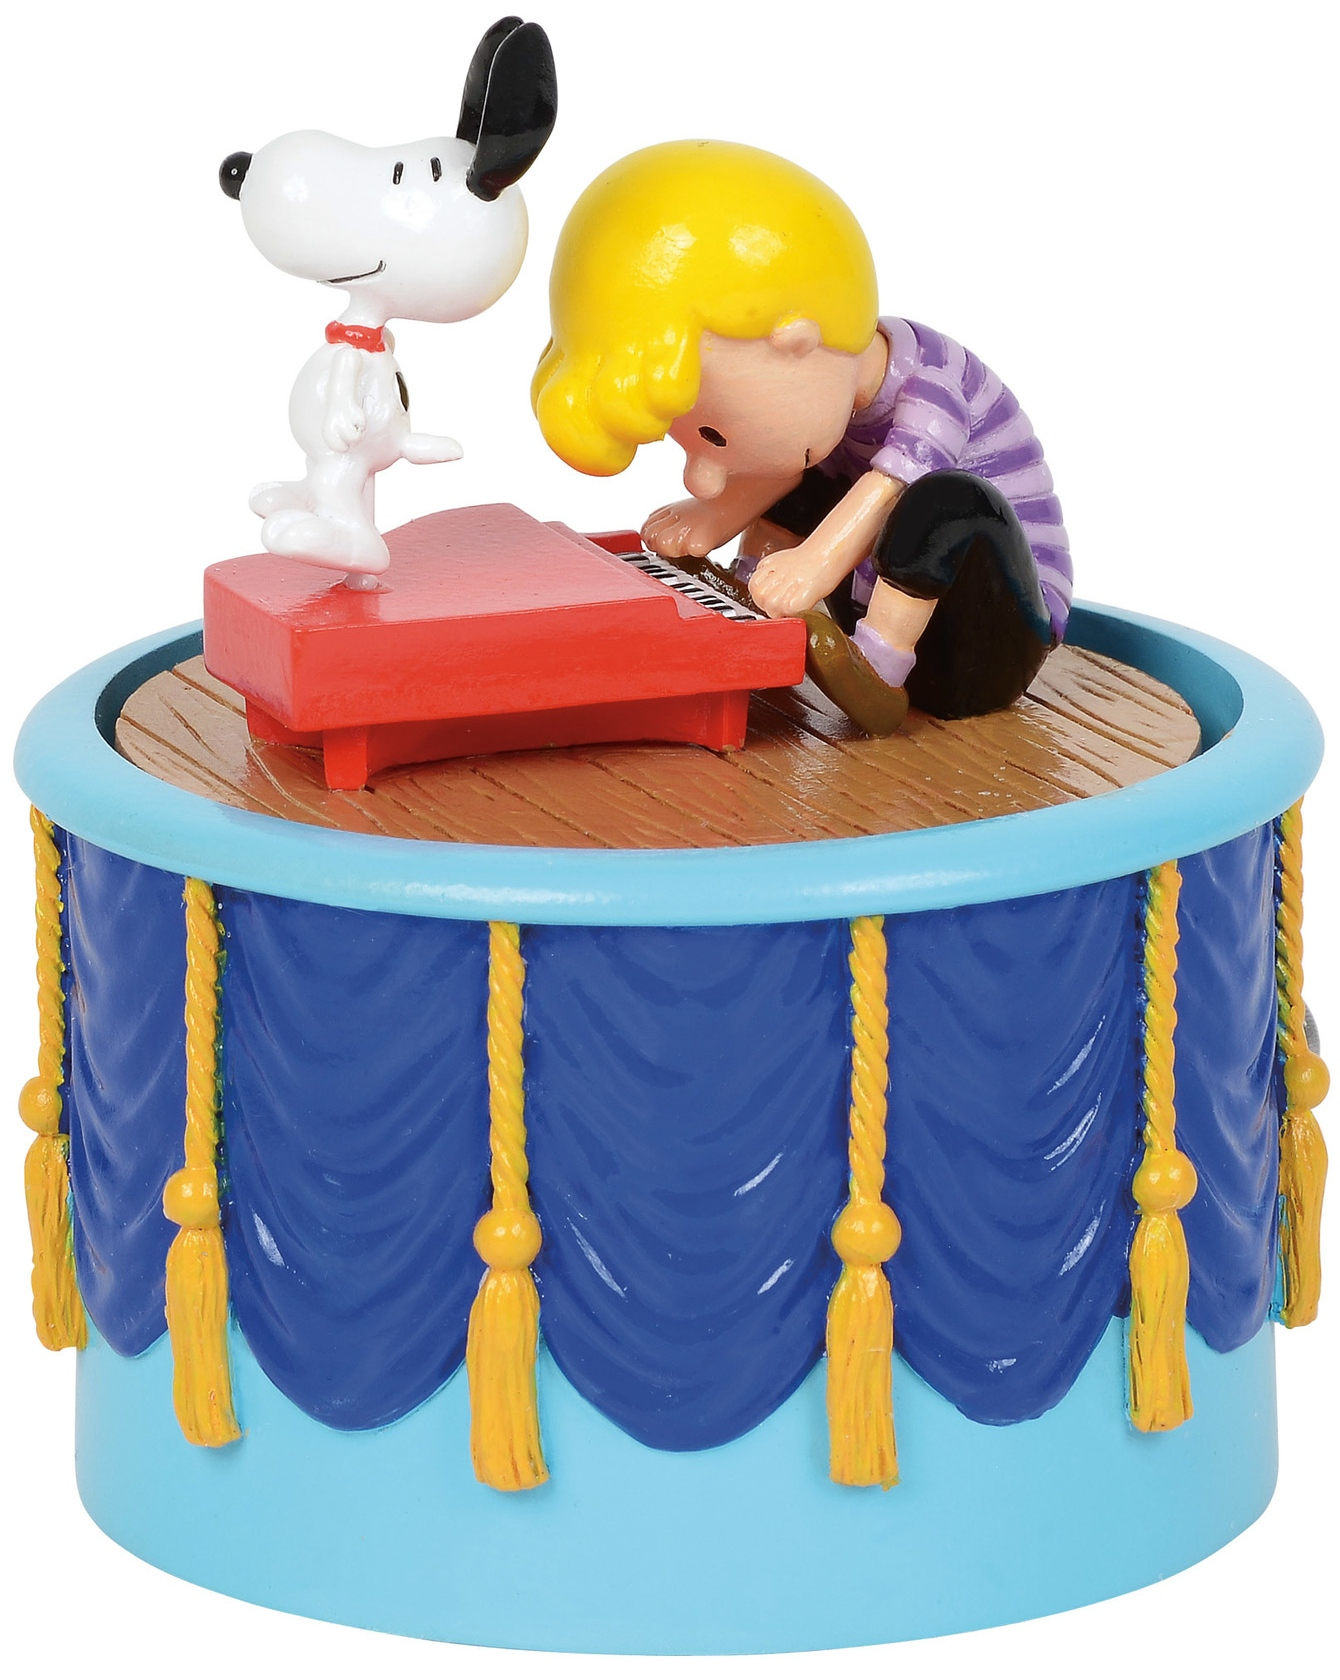 Peanut Villages by Department 56 6003313 Snoopy Dancing